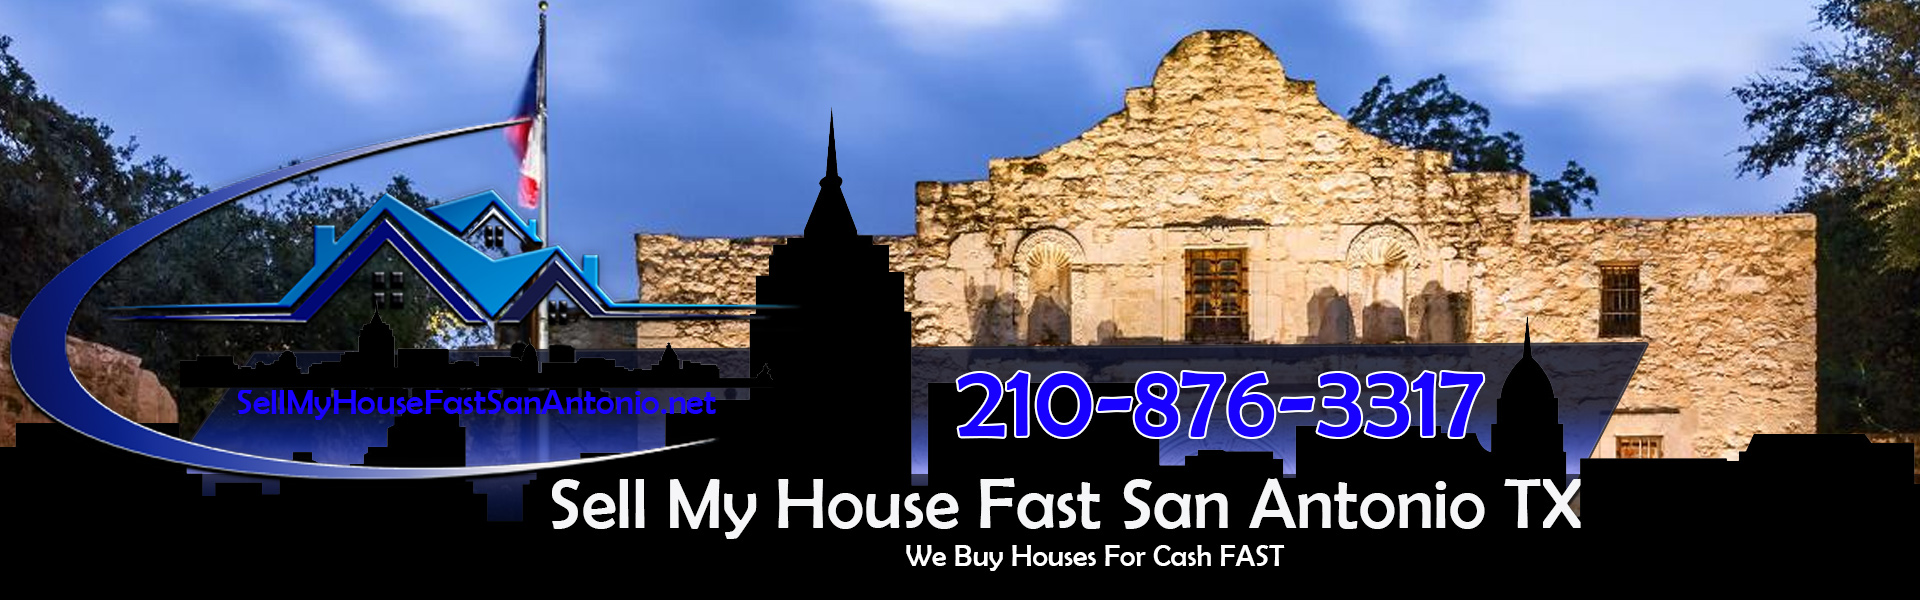 Featured image of the Alamo in San Antonio Texas. Here is our logo super imposed on the graphic